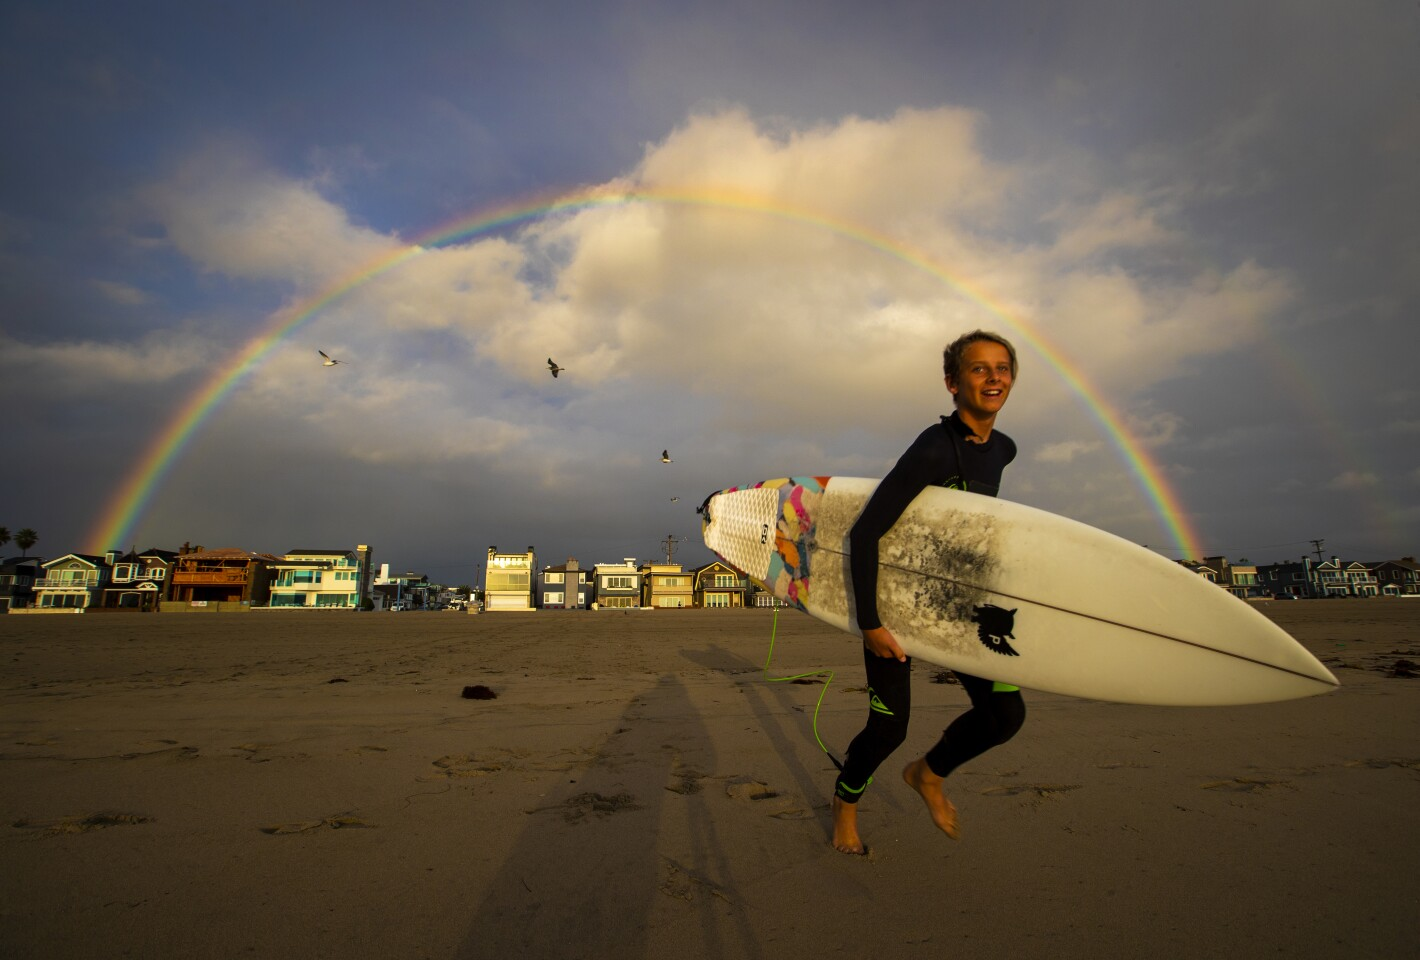 NEWPORT BEACH, CALIF. -- WEDNESDAY, MARCH 13, 2019: Surfer Jonah Haack, 13, of Newport Beach, revels in the appearance of a rainbow and excellent overhead surf conditions in between rain showers in Newport Beach, Calif., on March 13, 2019. (Allen J. Schaben / Los Angeles Times)